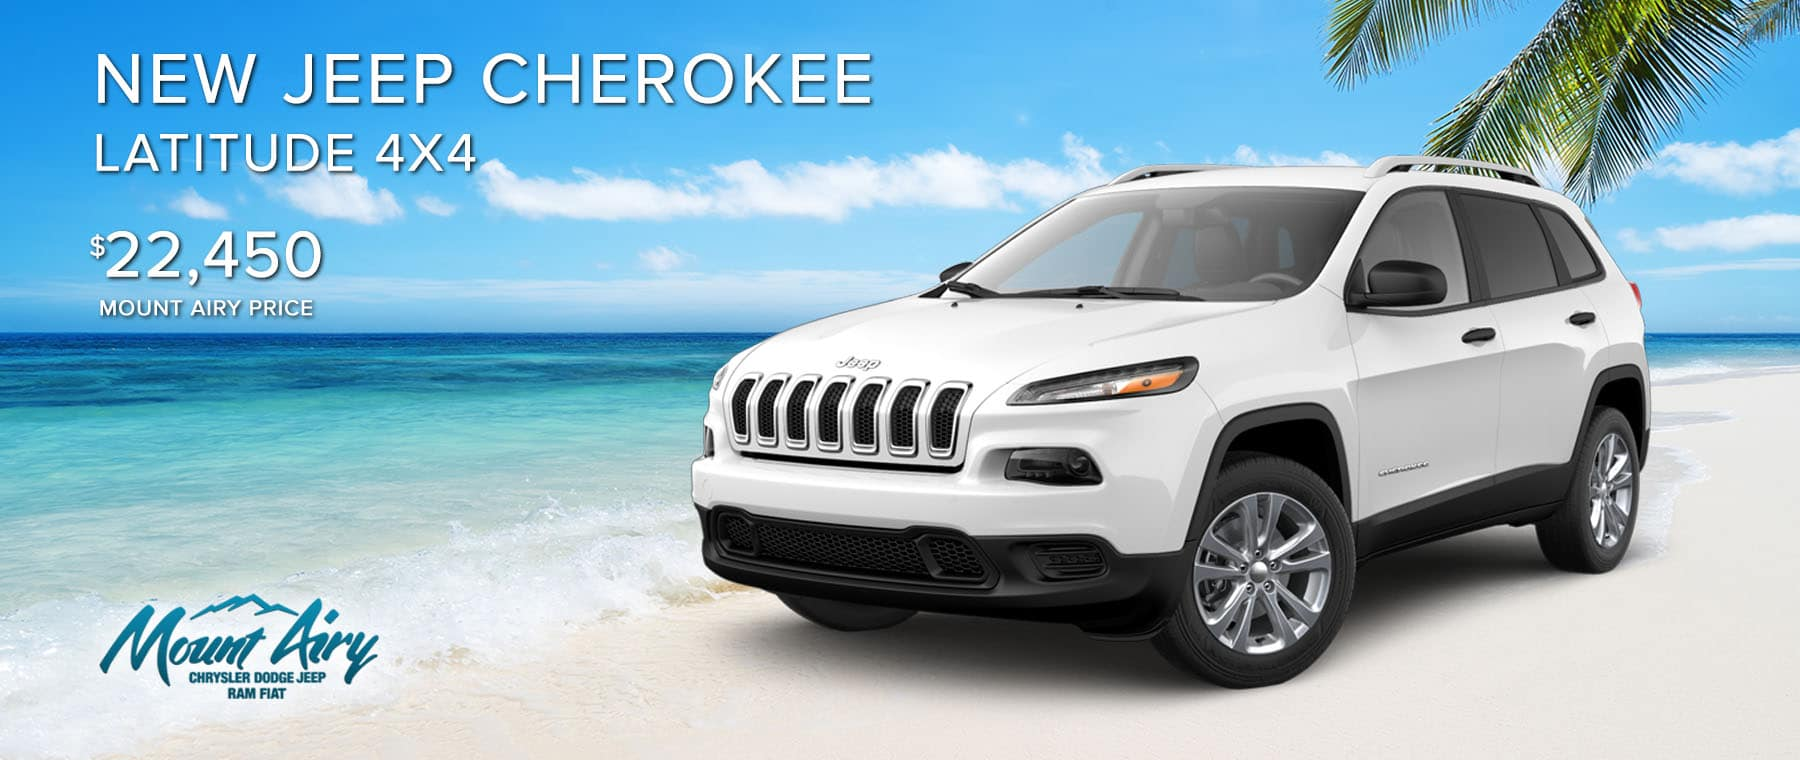 White New Jeep Cherokee on sale